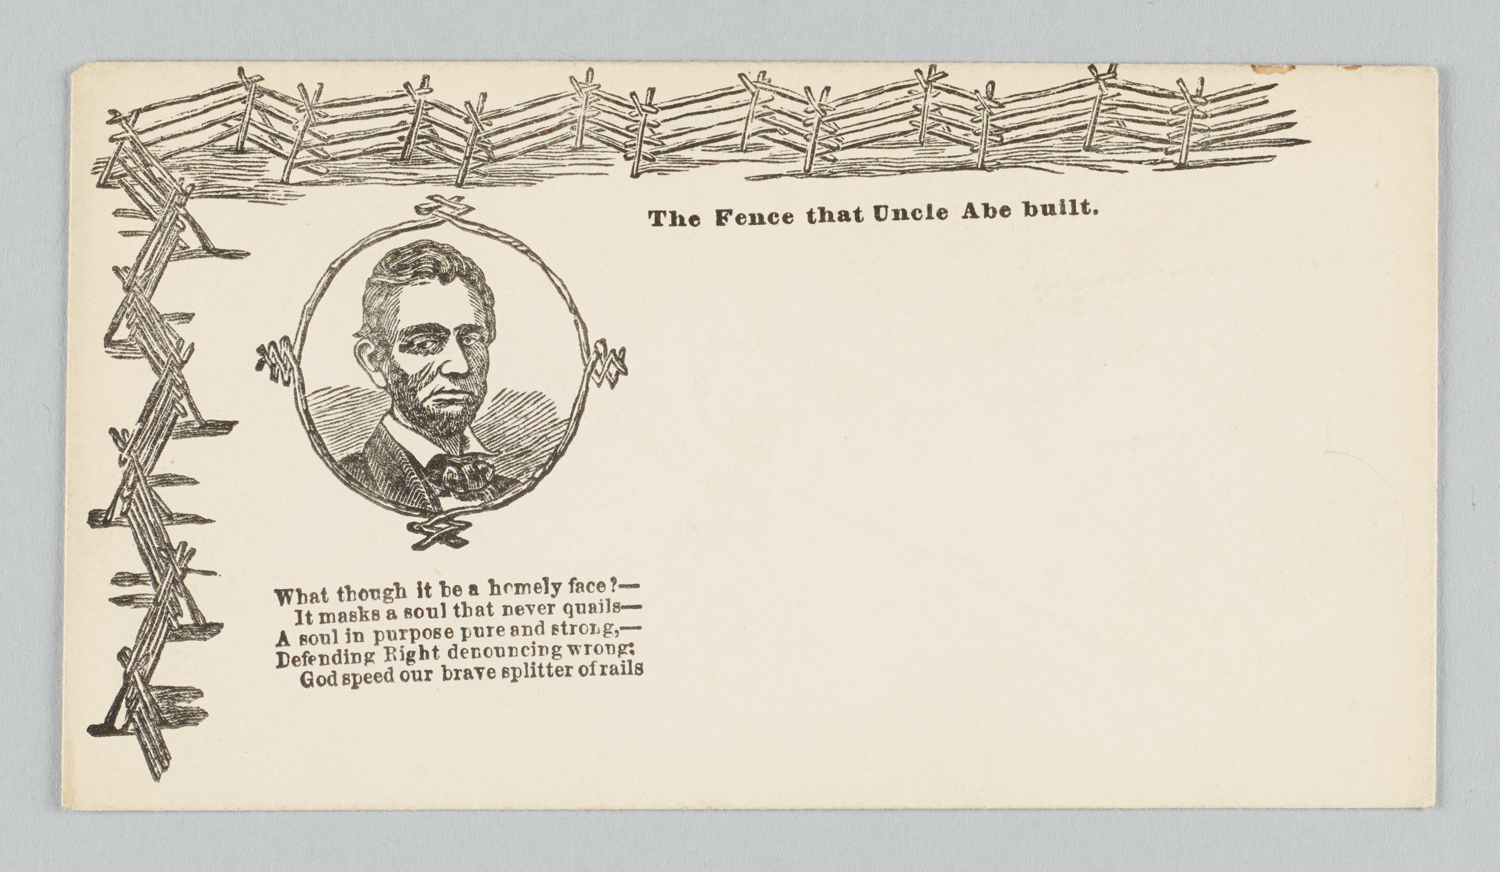 """This illustrated envelope dates from the 1860s. Depicting a portrait of Abraham Lincoln and accompanied by a poem, the iconography prominently features """"The Fence that Uncle Abe built."""" From the U.S. Civil War Papers, ca. 1850-1917. Box 7. Columbia University, Rare Book & Manuscript Library."""